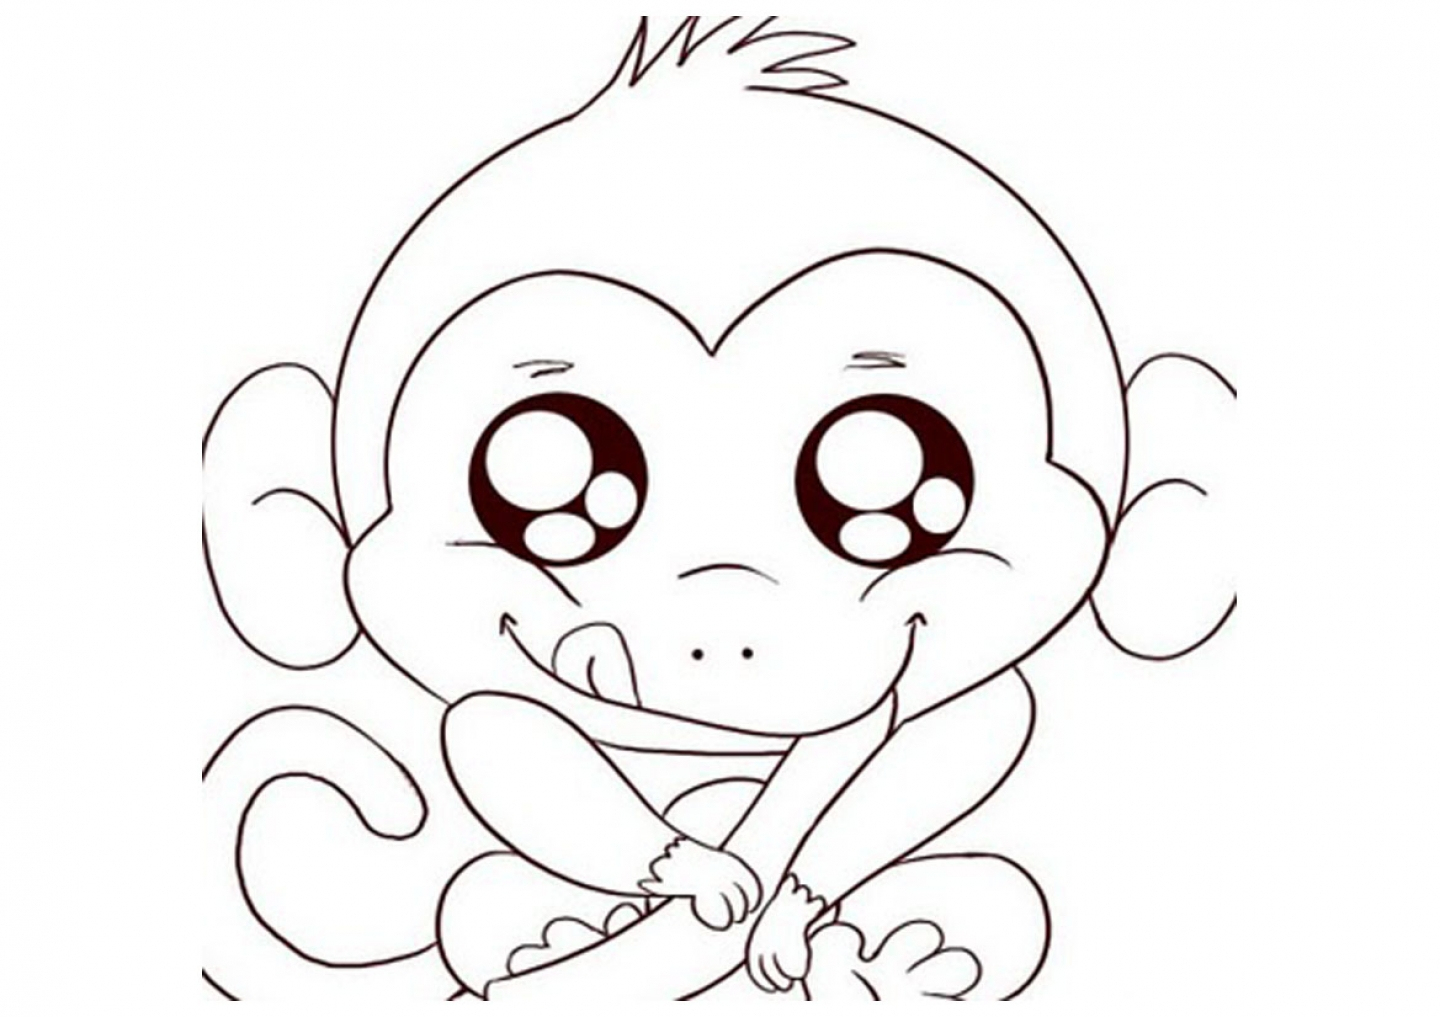 Coloring Pages : Free Printable Monkey Coloring Pages For Kids Pagee - Free Printable Monkey Coloring Pages